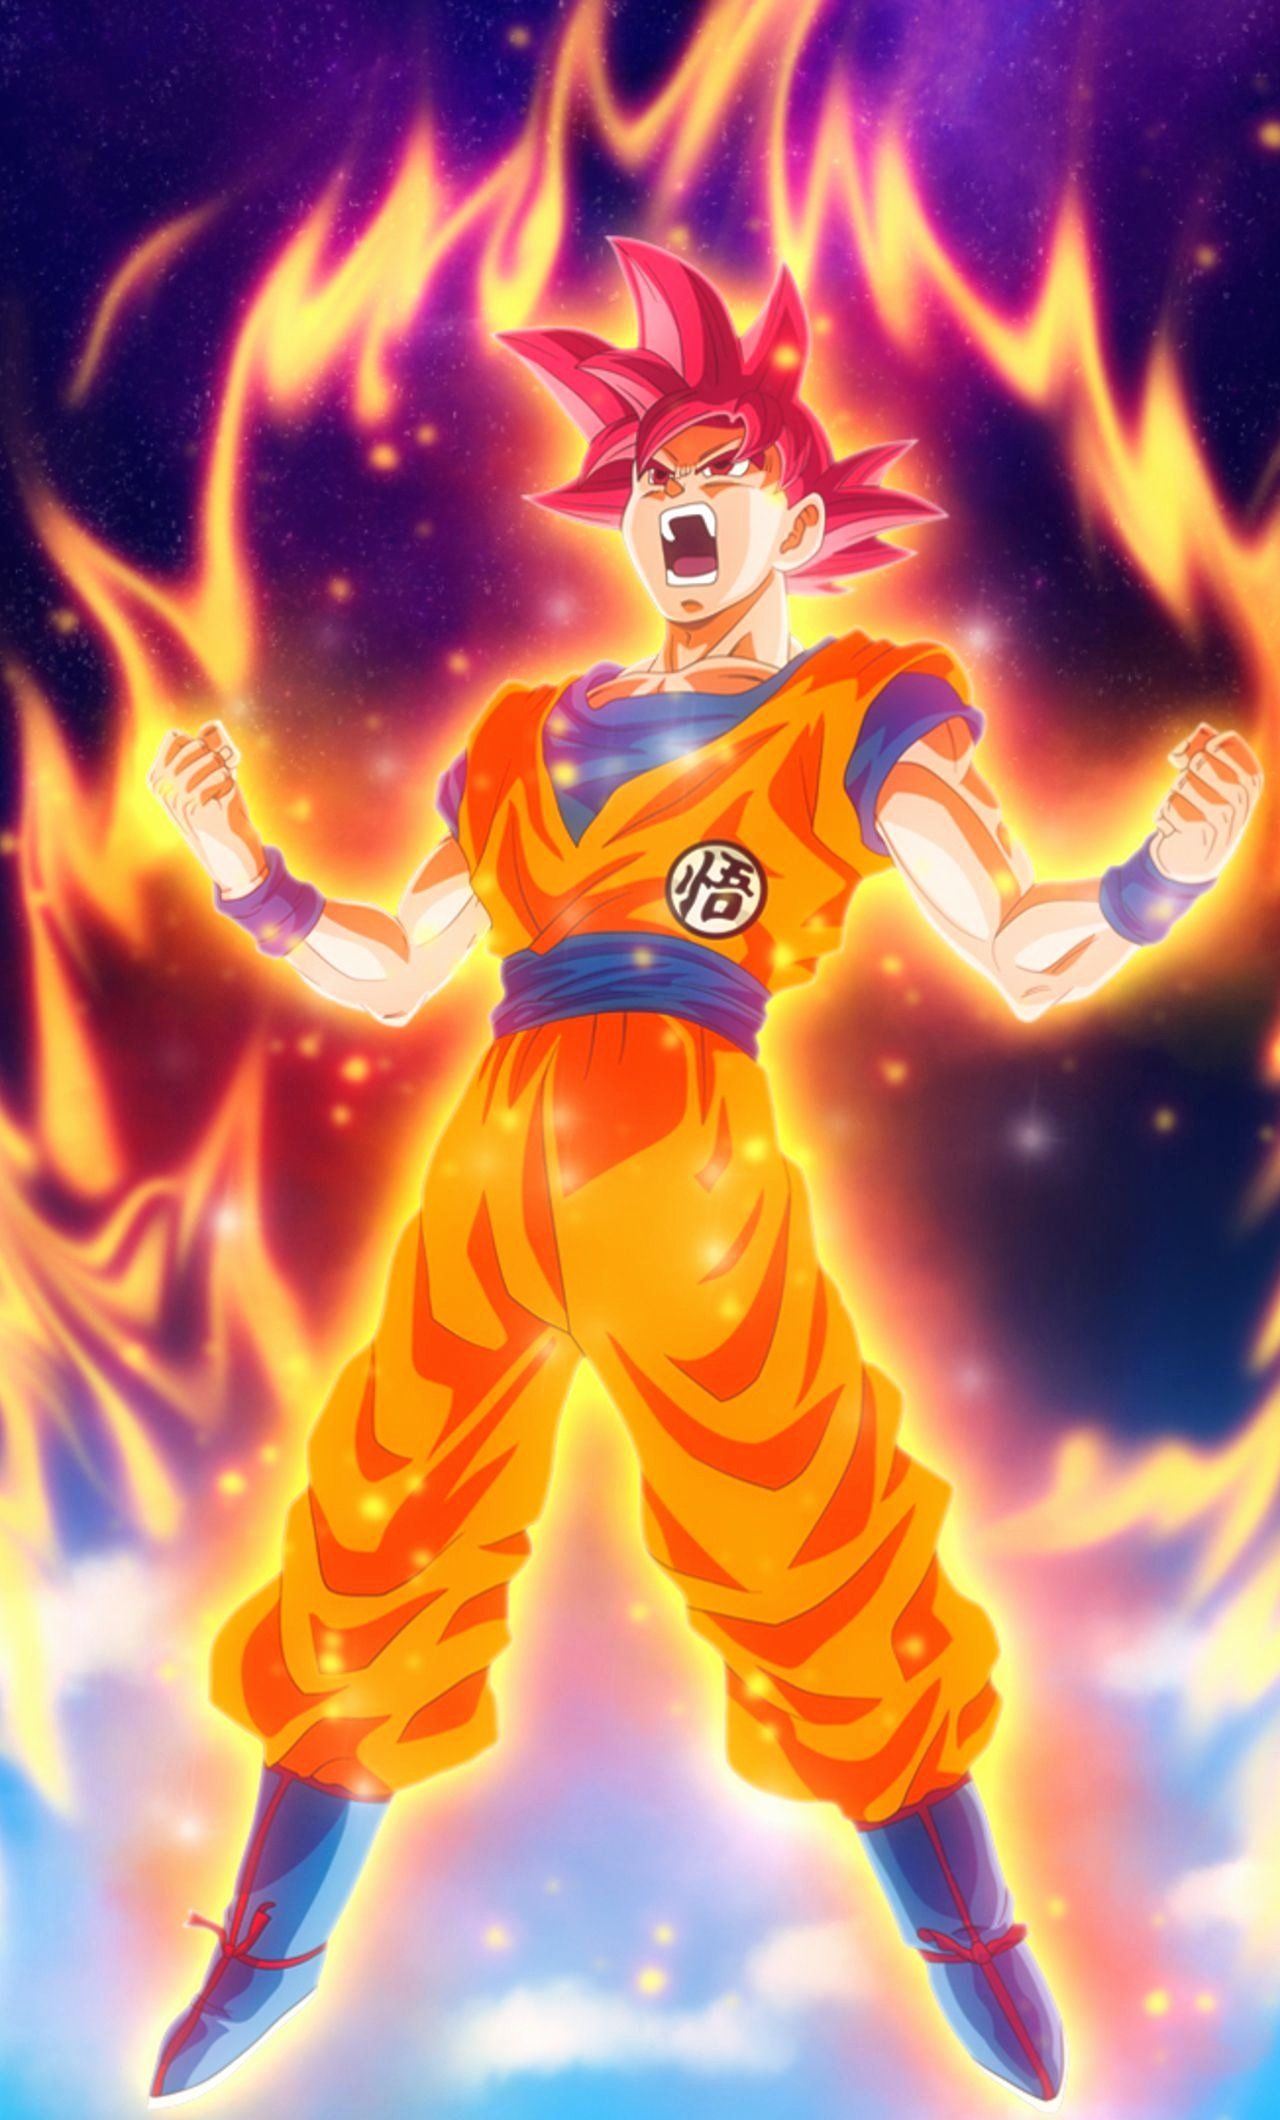 For desktop & mobile in hd or 4k resolution. Dragon Ball Z Aesthetic iPhone Wallpapers - Wallpaper Cave